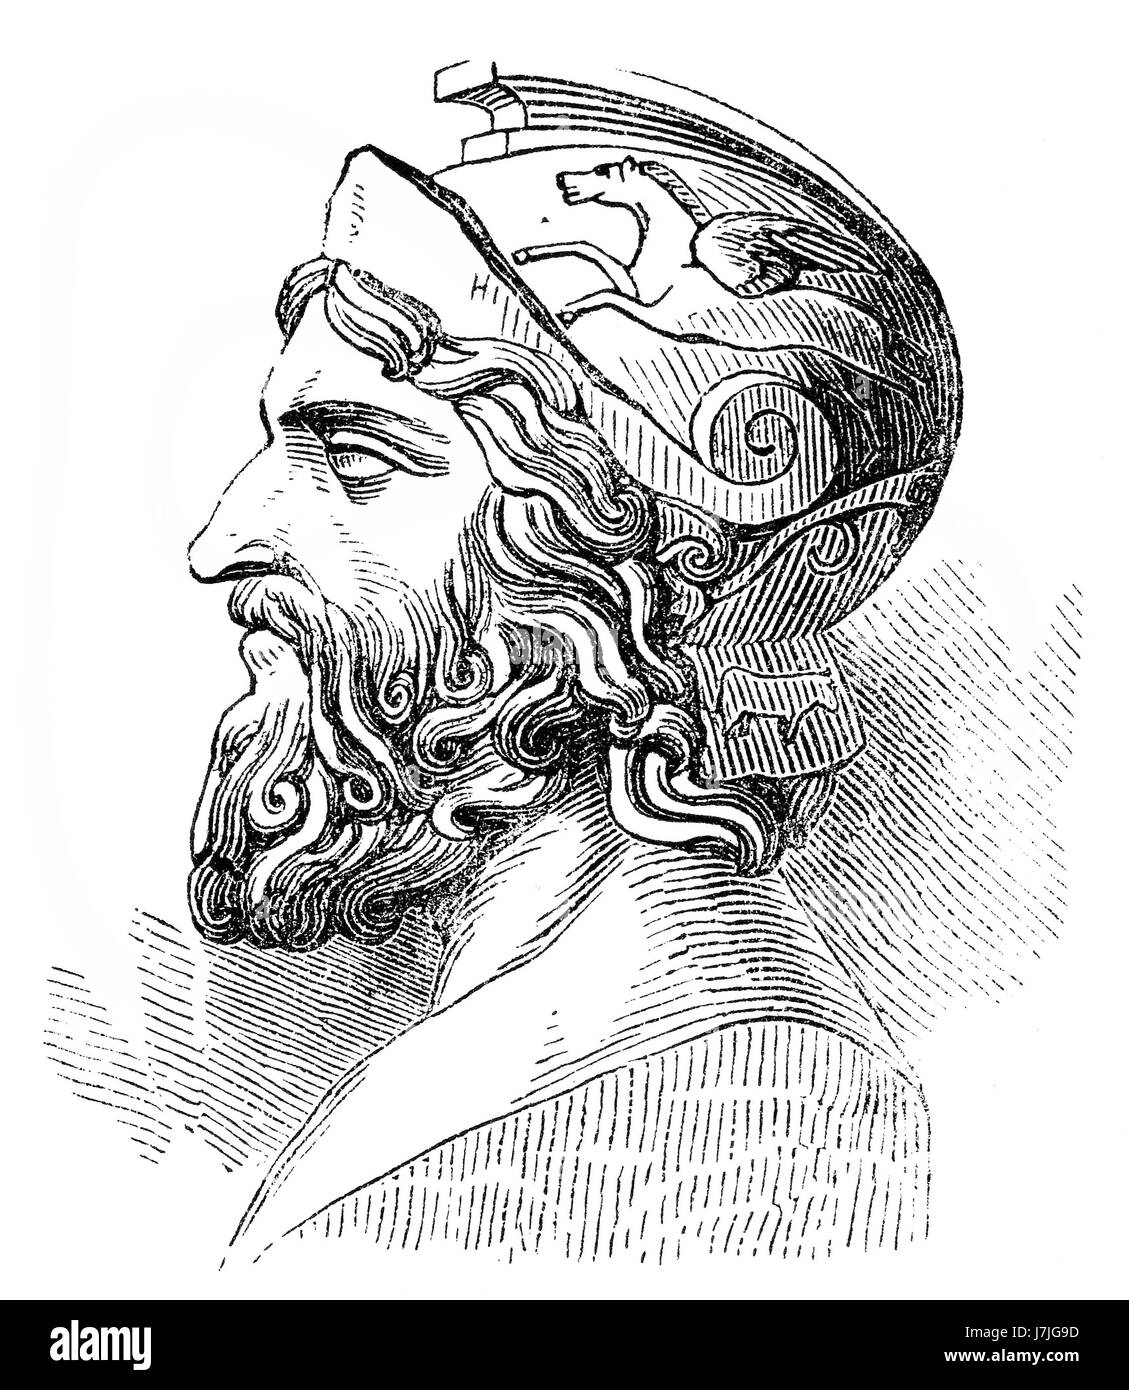 Miltiades the Younger, c. 550 – 489 BC, an Athenian statesman, Ancient Greece - Stock Image